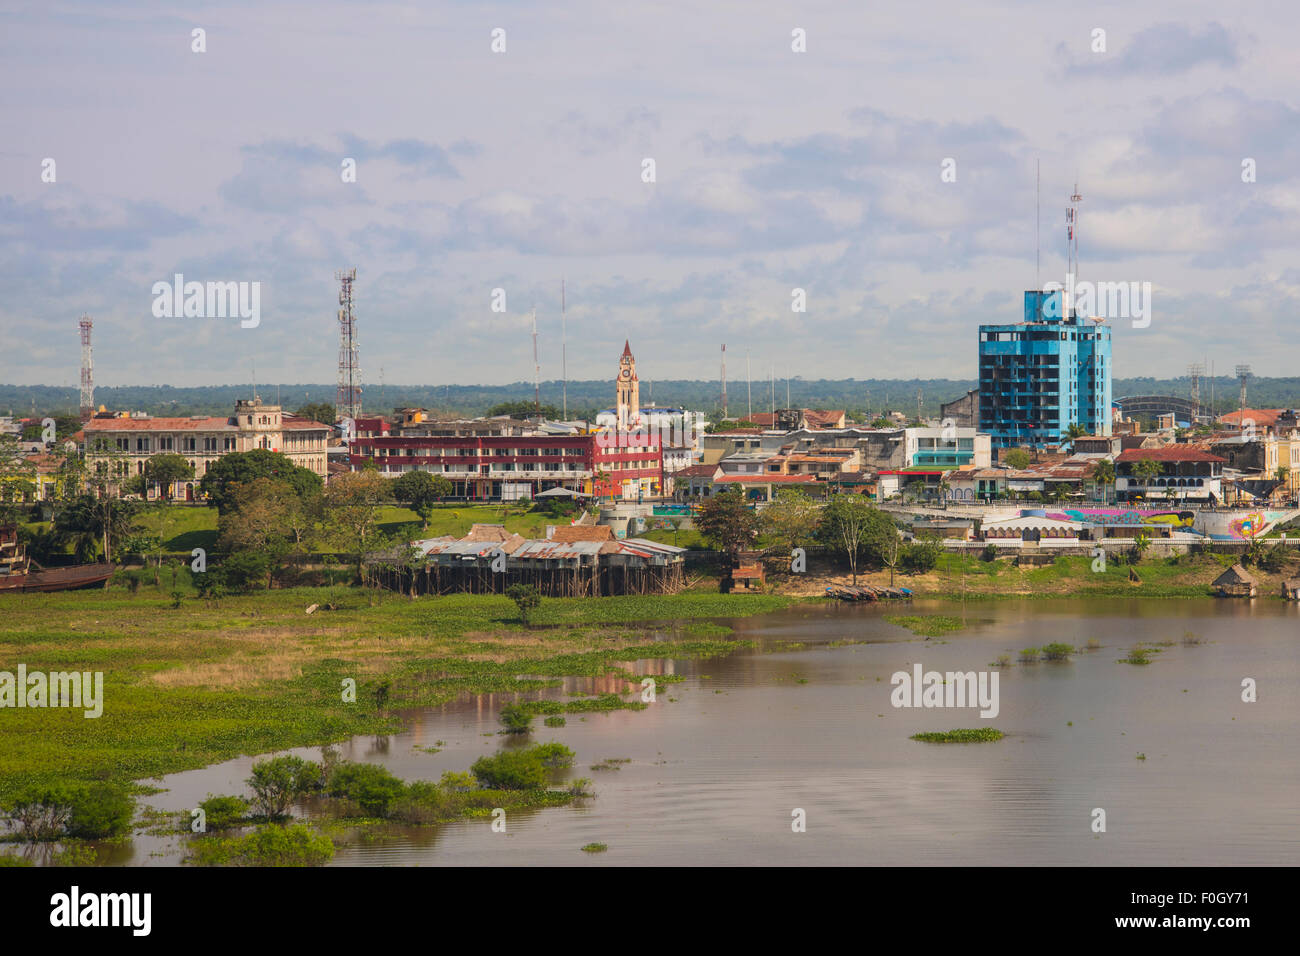 Iquitos from the air on the River Amazon, landmark buildings, 'The Boulevard and floodplain of the Amazon in - Stock Image